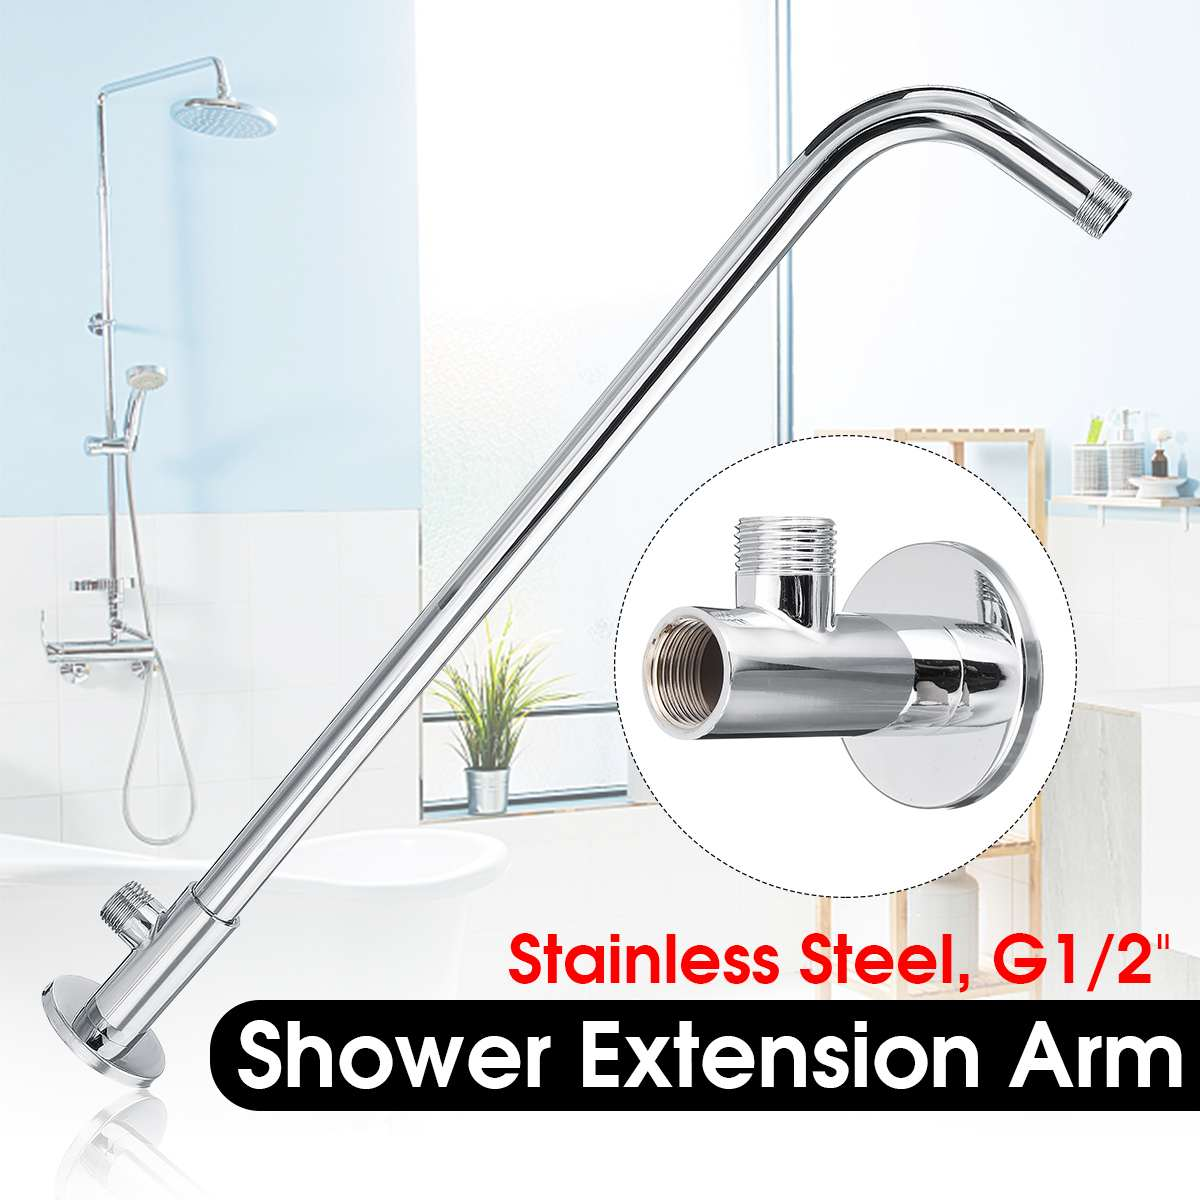 """G1/2"""" Shower Arm Wall Ceiling Mounted Bath Fixed Pipe Stainless Steel Sprayer Hose For Rain Shower Head Bathroom Accessories"""